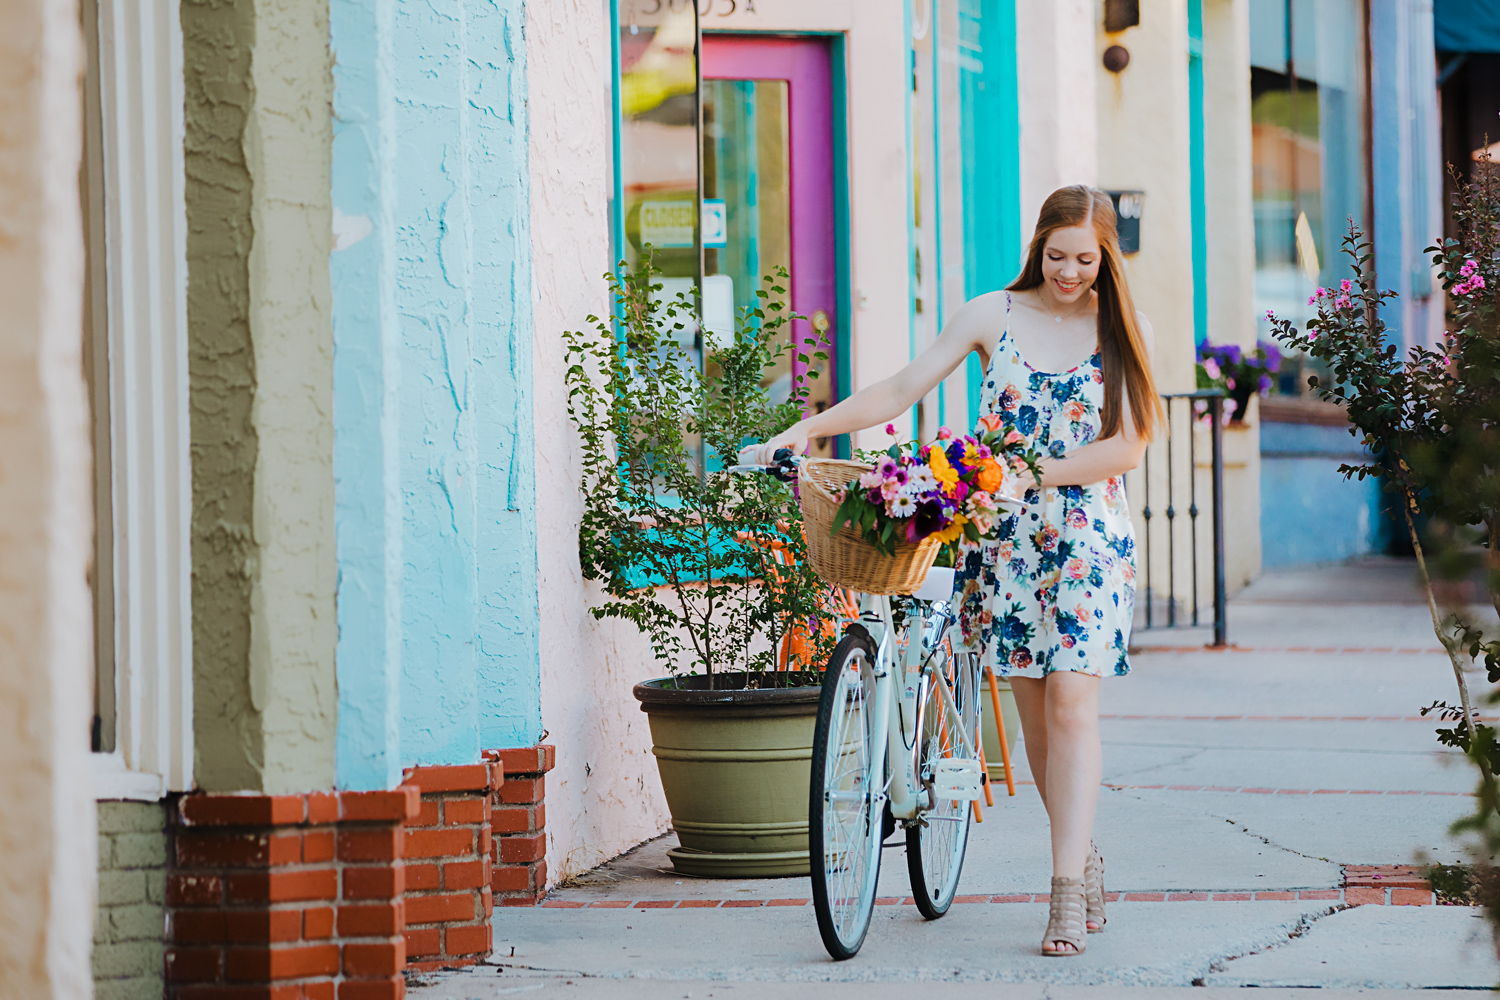 Senior girl with long red hair, pushing a bike with flowers in the bakers in the Paseo District in Oklahoma City by Amanda Lynn.